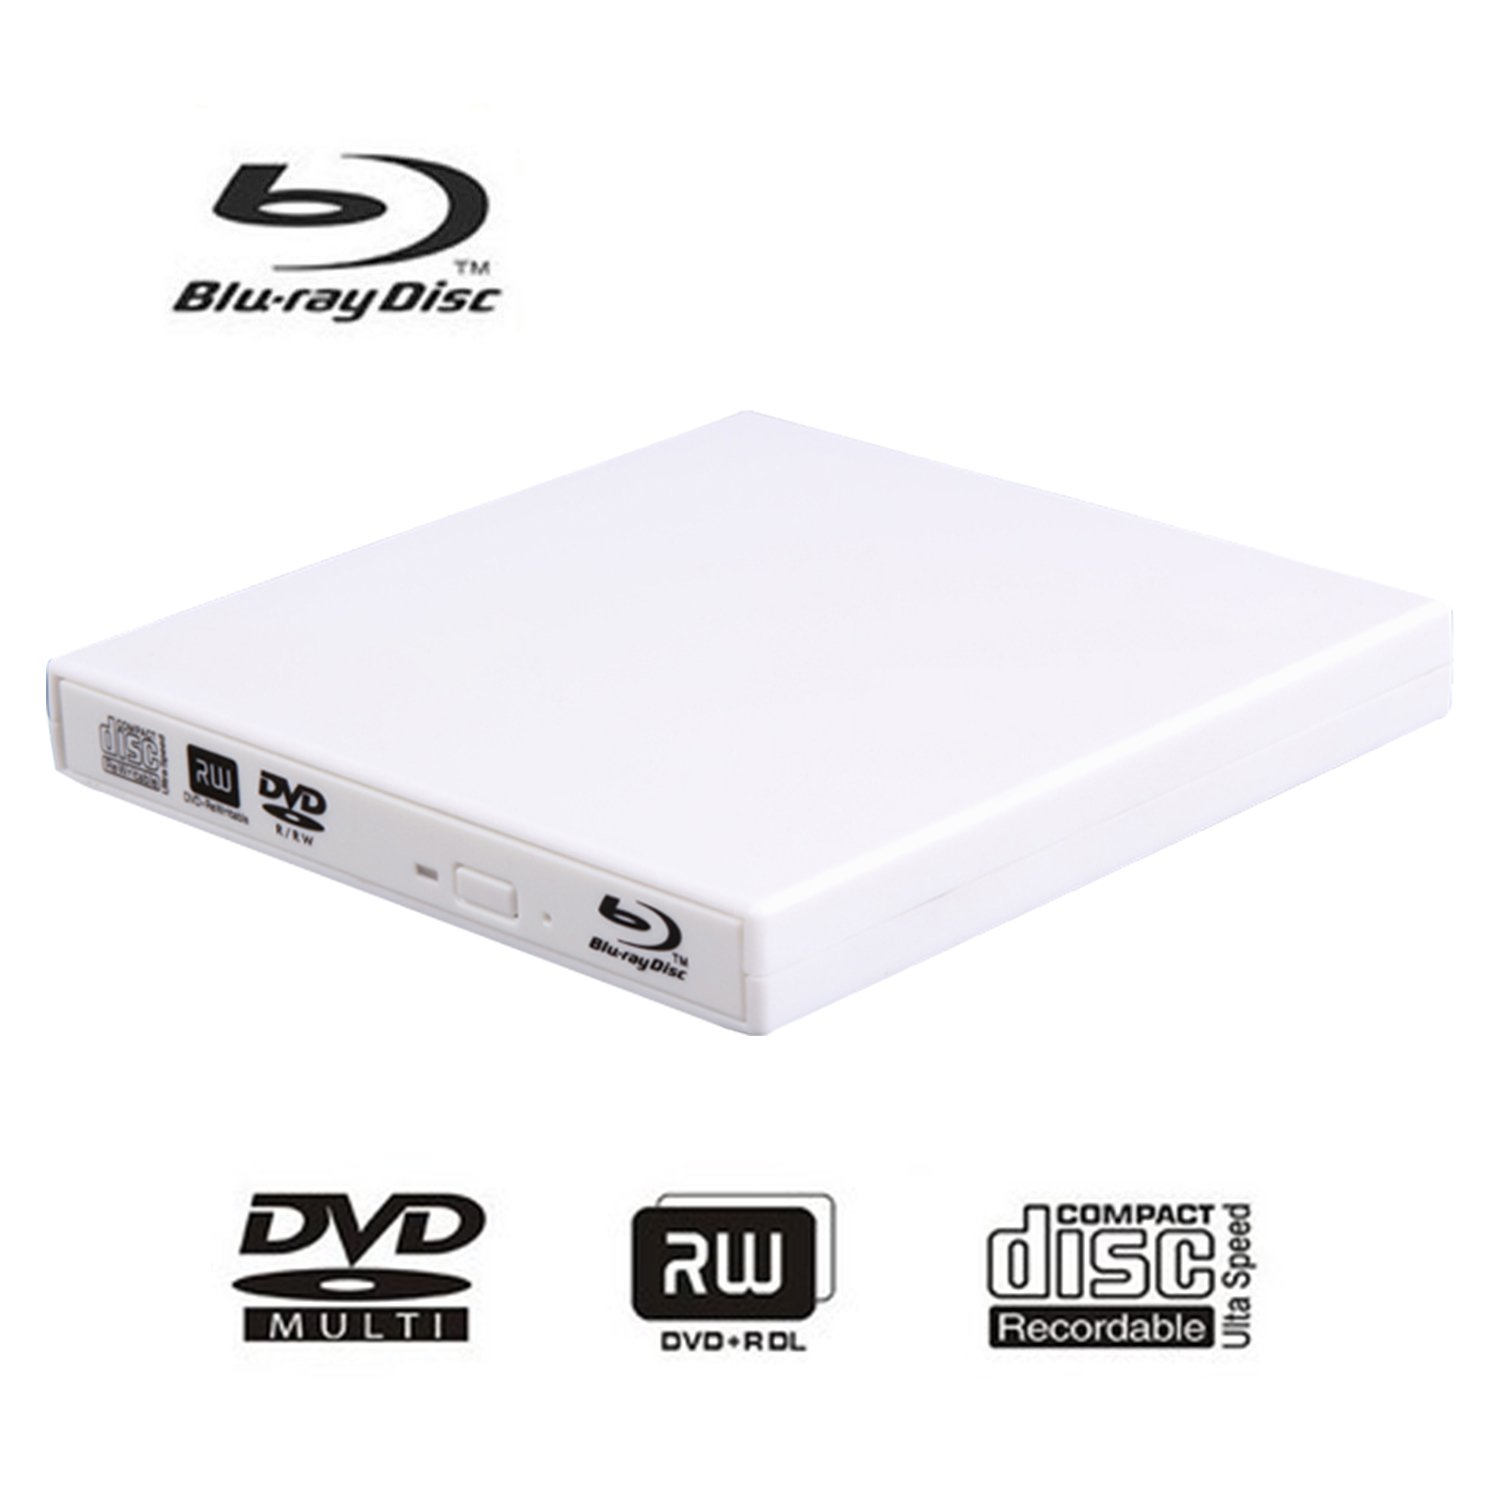 External blu-ray disc drive, USB portable DVD burner,BD-ROM,DVD/CD-RW/ROM Writer/Player,Support xp/win/Linux system related desktop, notebook, etc (white)